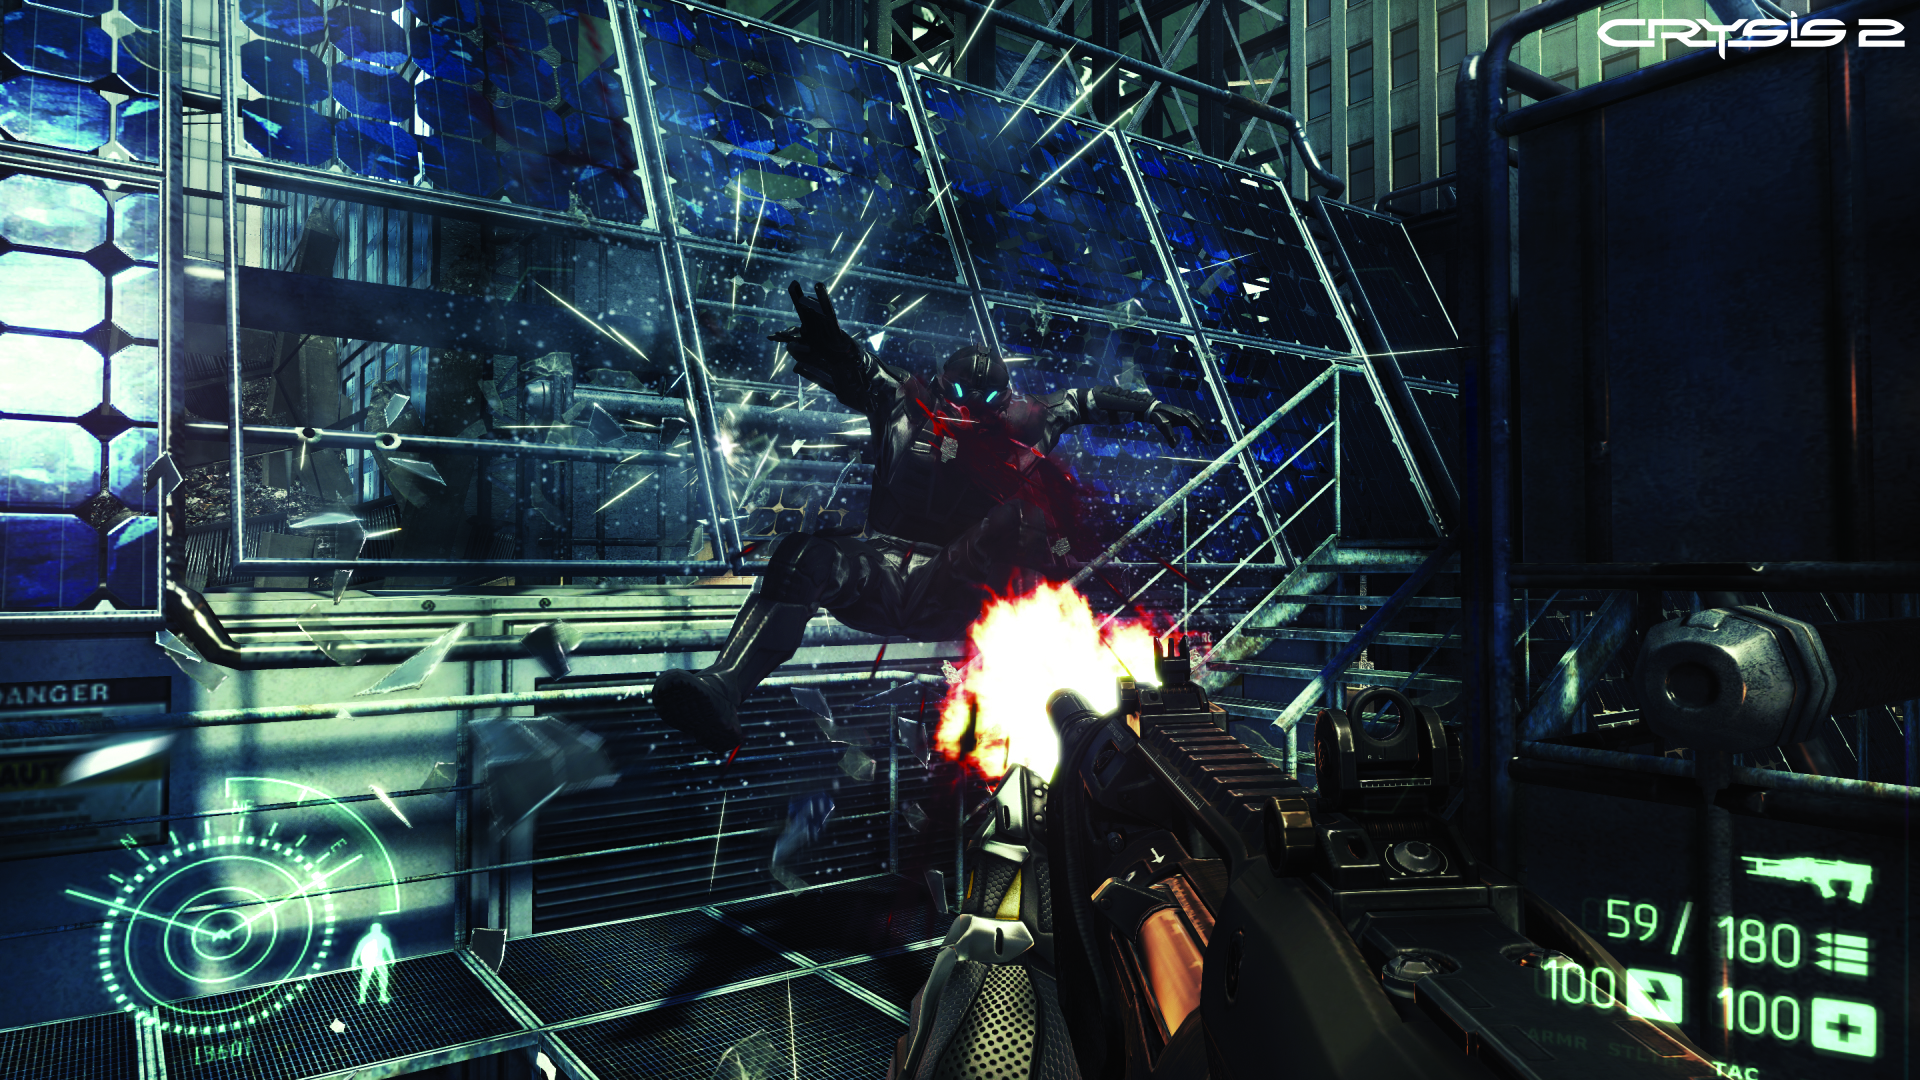 crysis 2 specifications